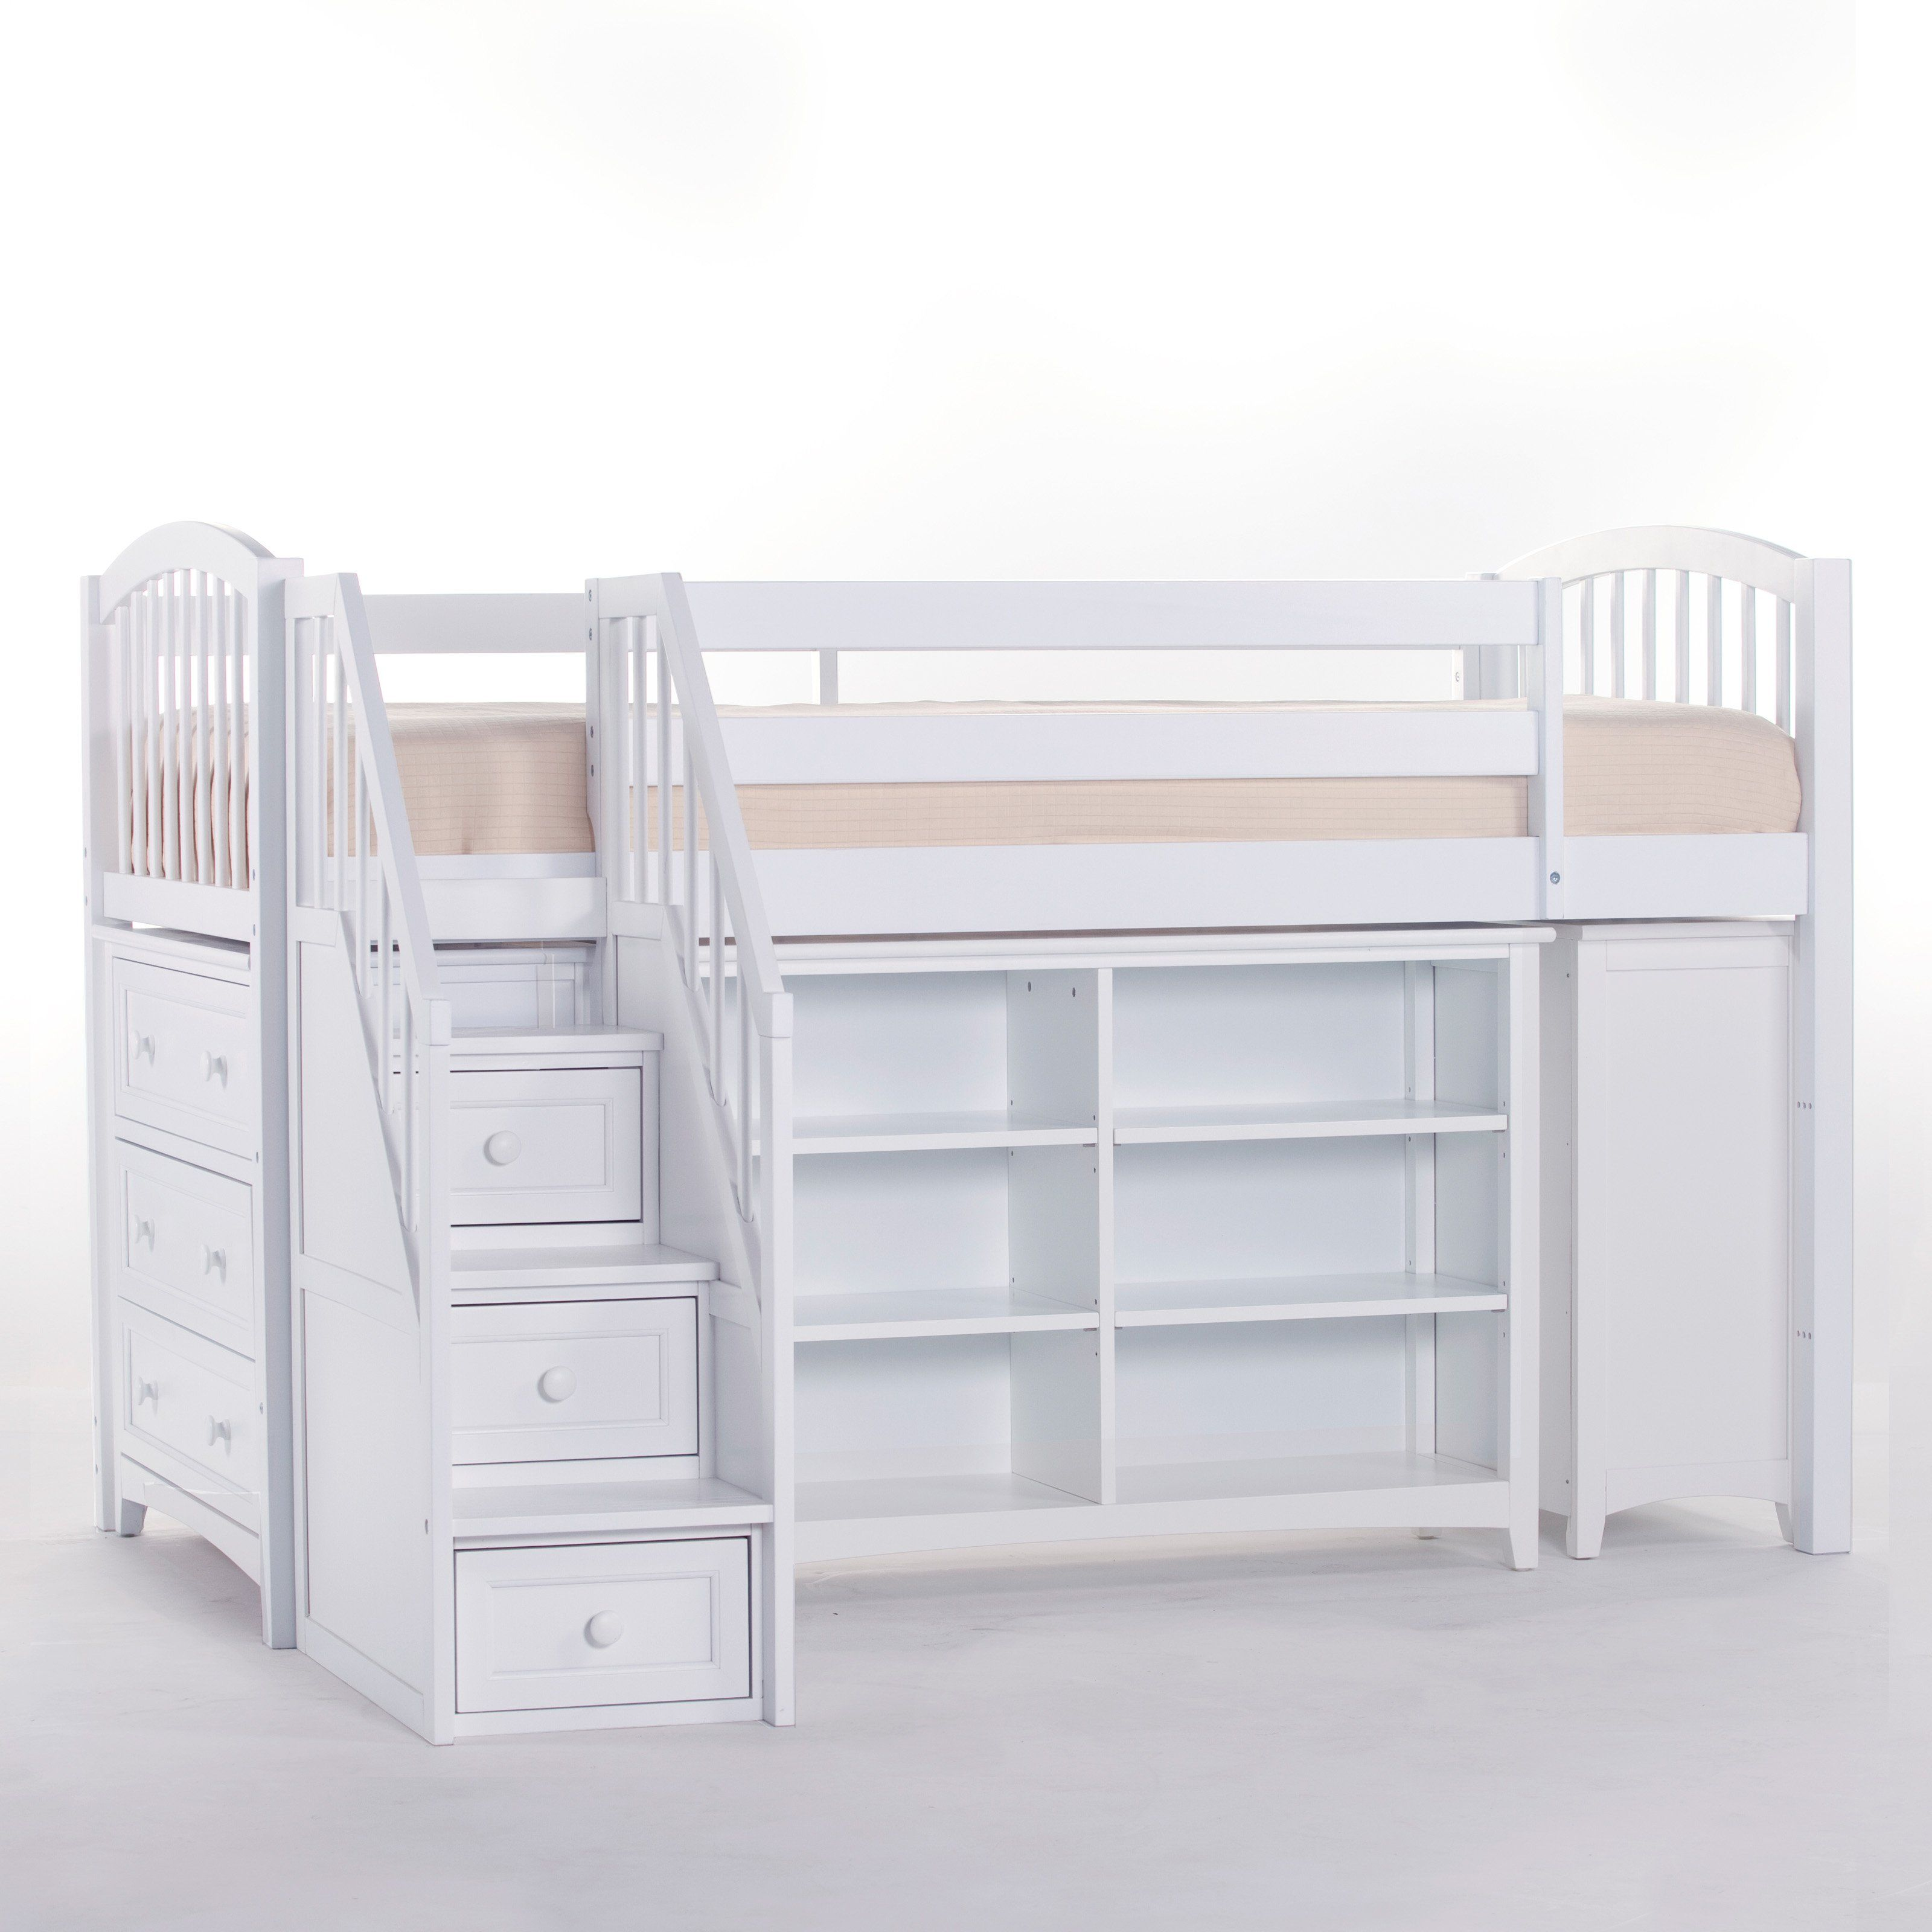 Loft bed with desk white  Have to have it School House Storage Junior Loft with Stairs